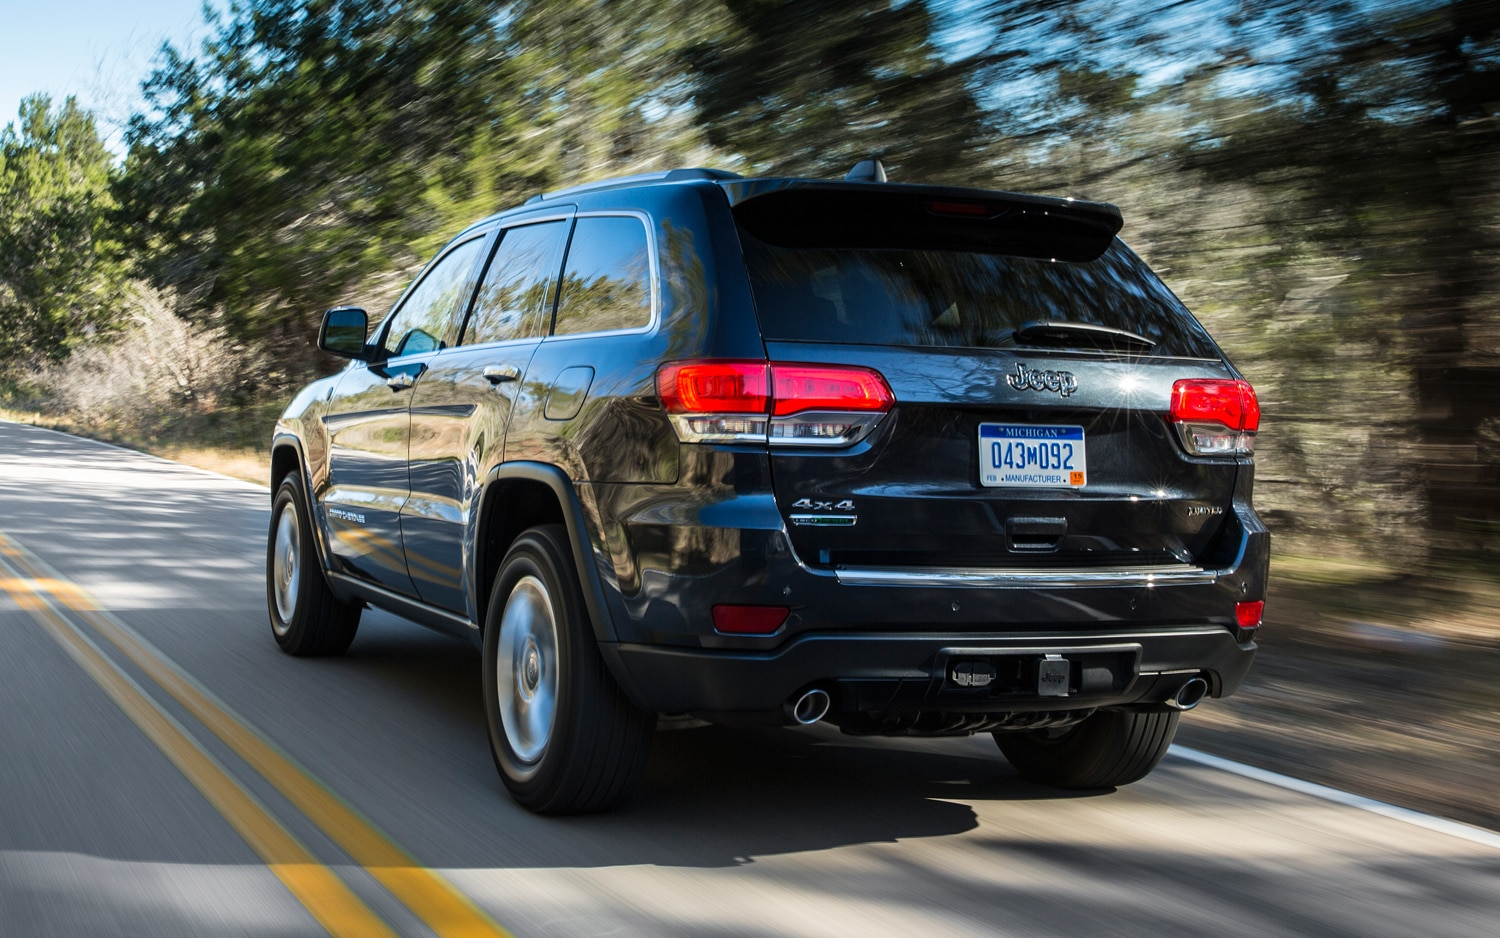 2014 Jeep Grand Cherokee Diesel Rear View In Motion